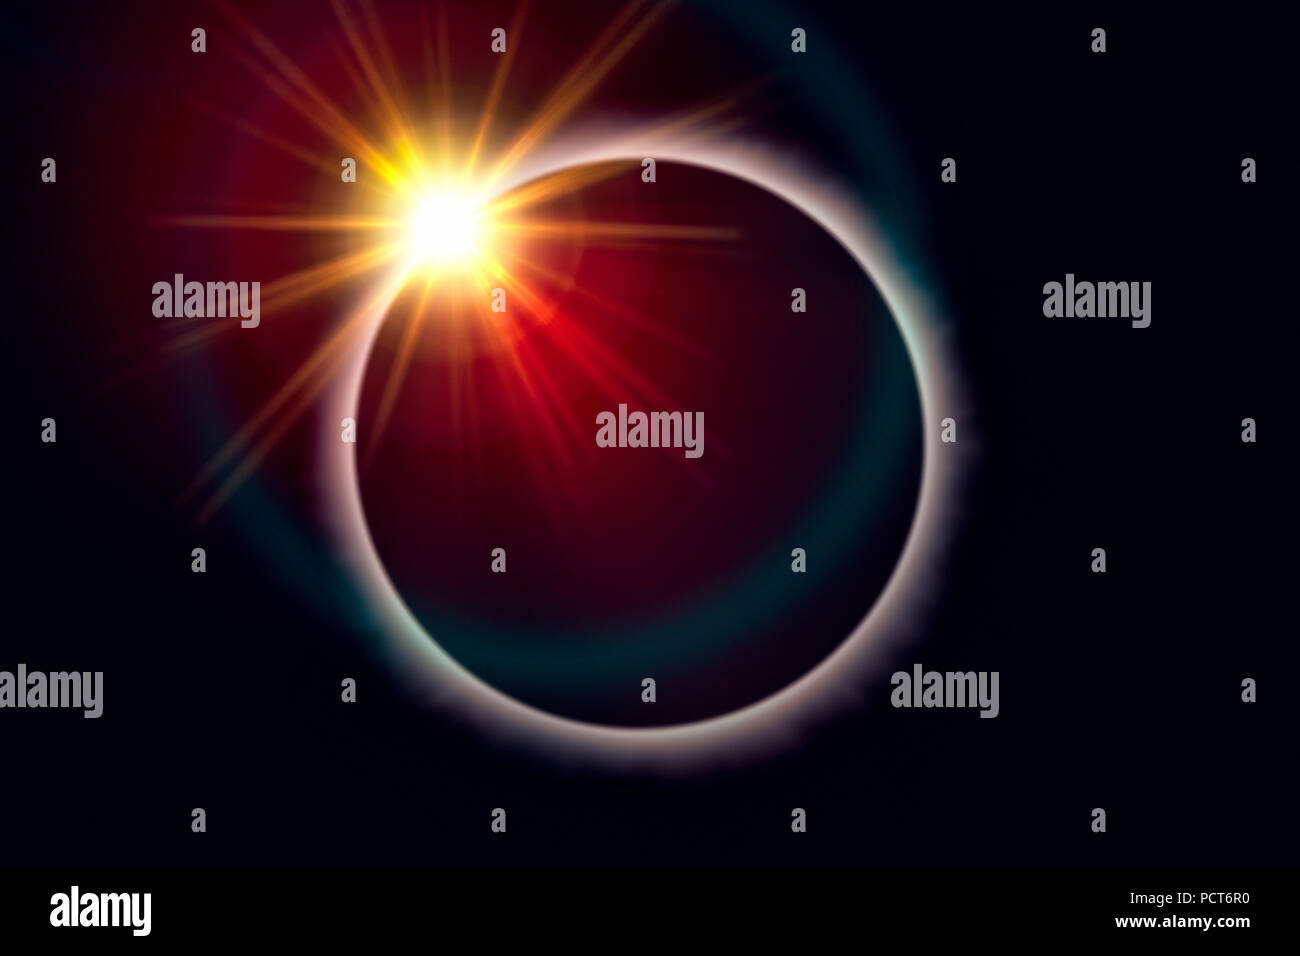 Total eclipse of the sun with diamond ring effect - Stock Image